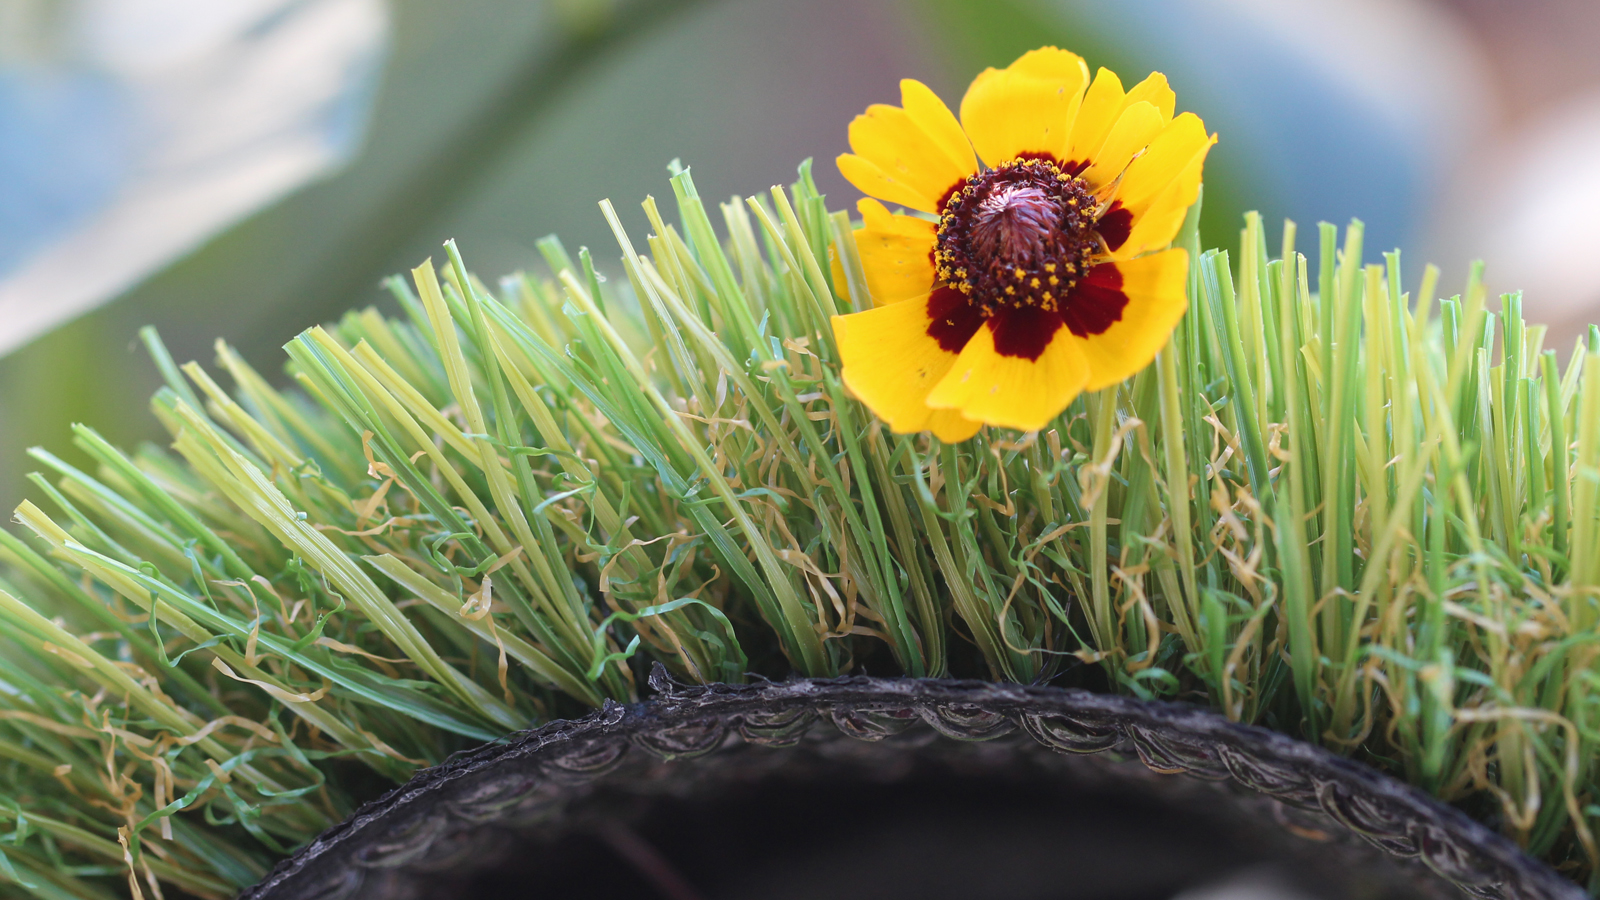 artificial grass olive green emerald green with yellow red flower